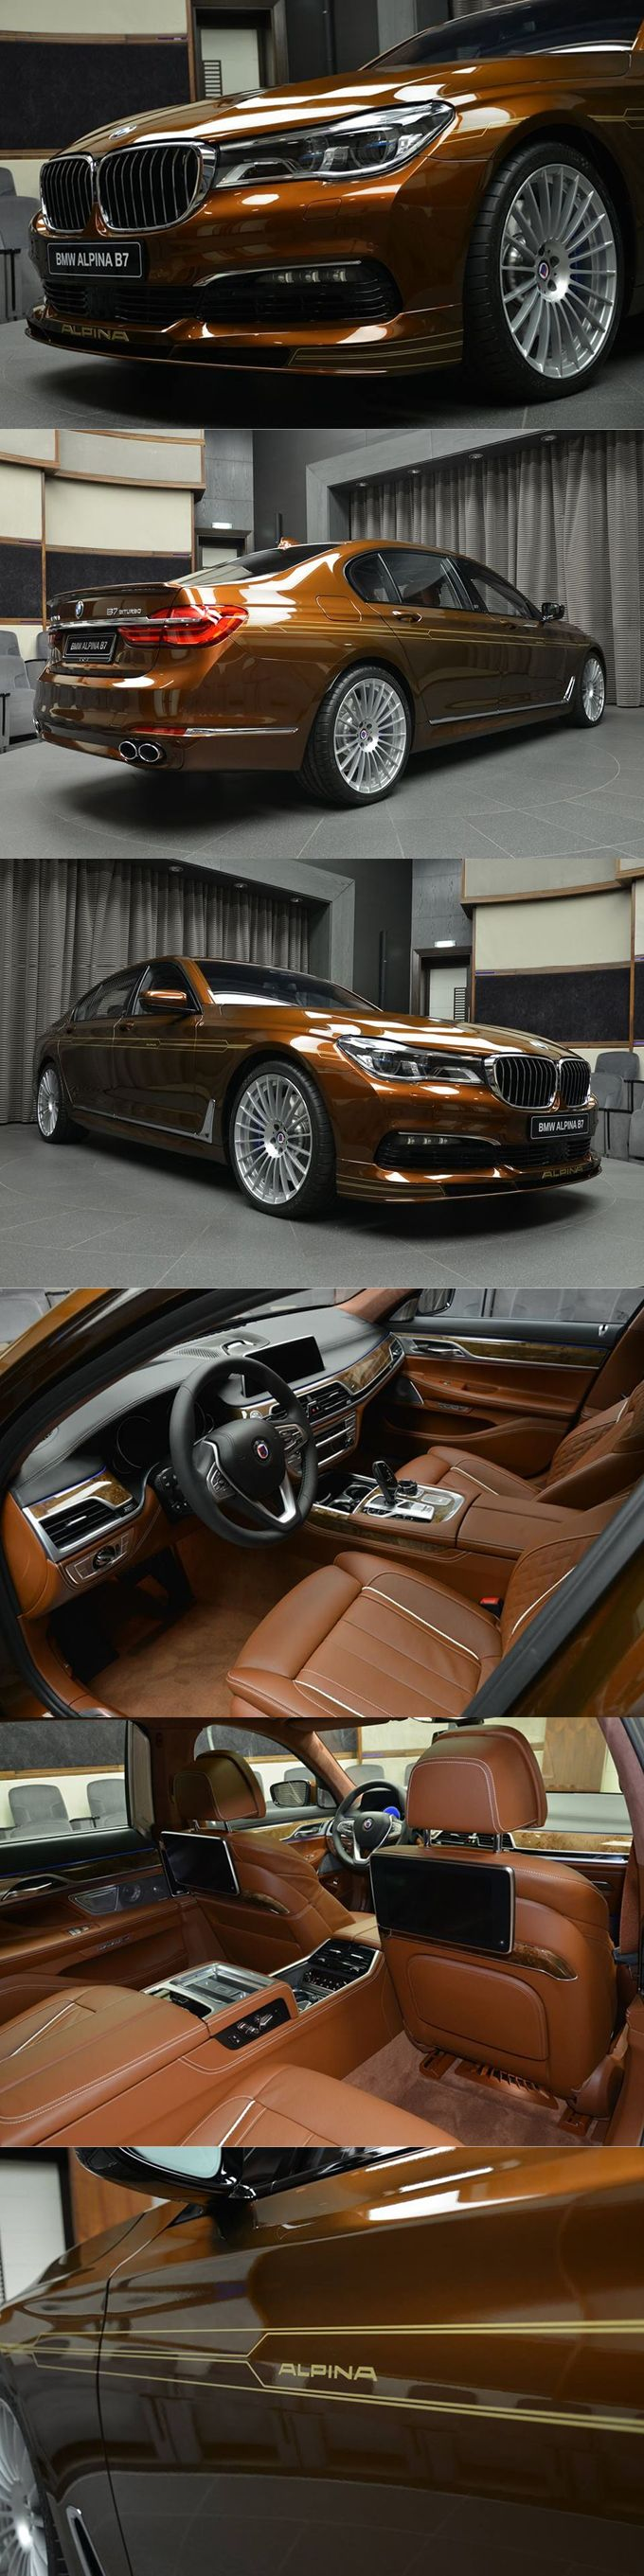 2017 Alpina B7 Bi-turbo / chestnut bronze / 608hp 4.4l V8 / BMW Abu Dhabi / Germany / brown gold / 17-388